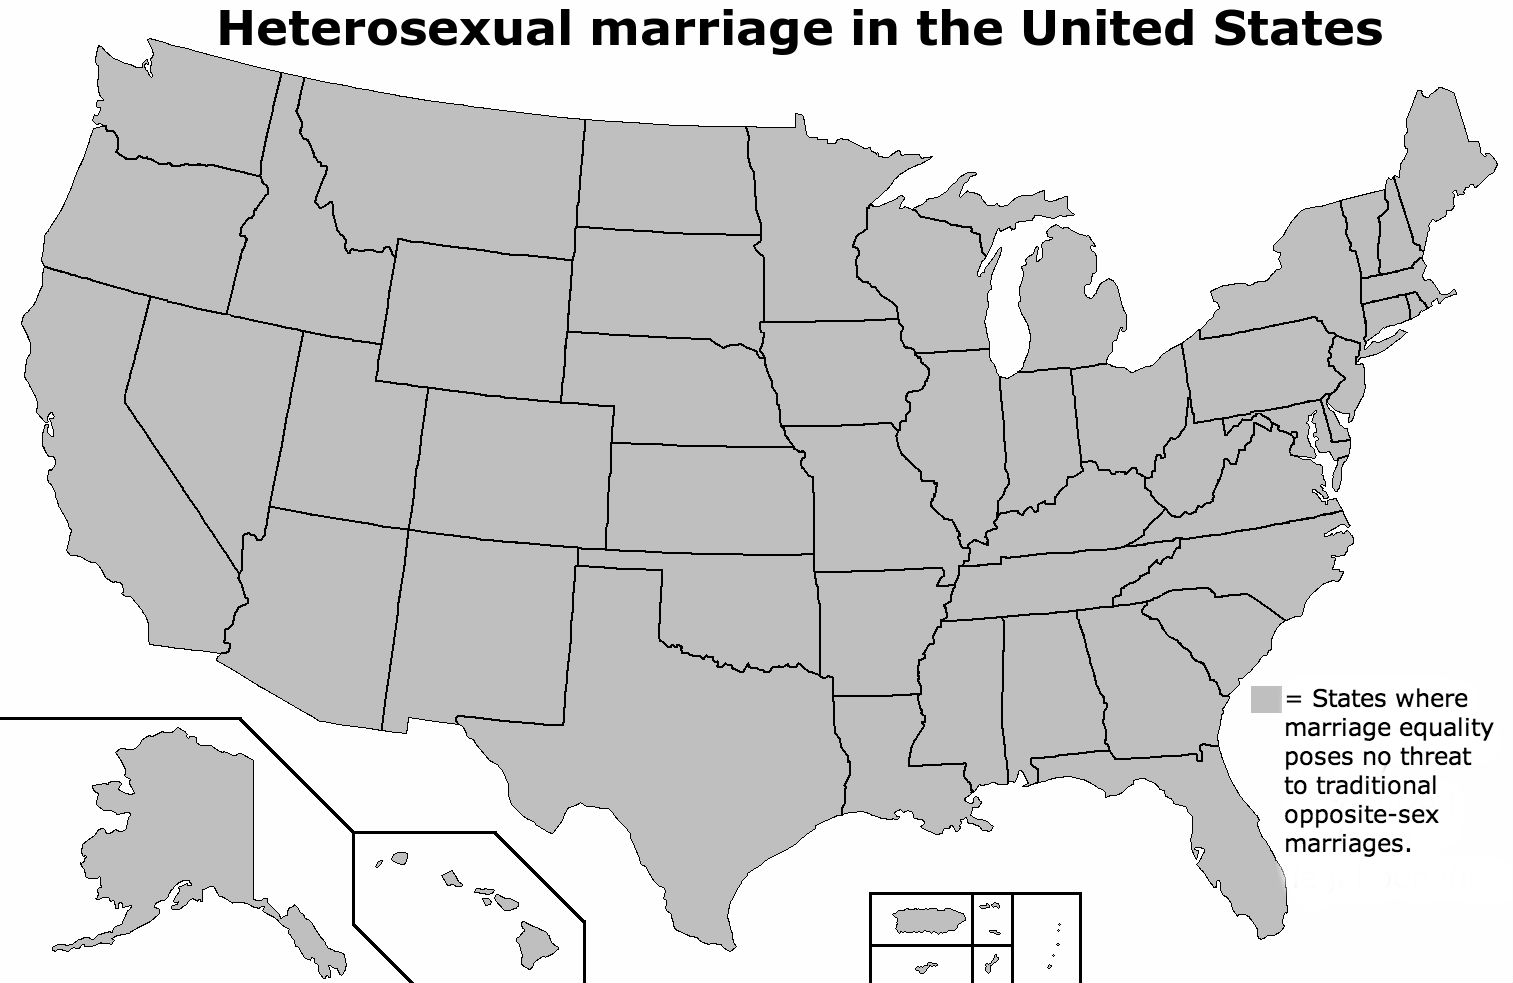 Heteroual marriage still unthreatened in all 50 states ... on marriage in zimbabwe, marriage in iceland, marriage in mauritius, marriage in italy, marriage in the ukraine, marriage in singapore, marriage in the great depression, marriage in zambia, marriage in the temple, marriage in bahrain, marriage in the 20th century, marriage in the nicaragua, marriage in the hand, marriage in lebanon, marriage in the past, marriage in taiwan, marriage in honduras, marriage in kazakhstan, marriage through history, marriage in czech republic,